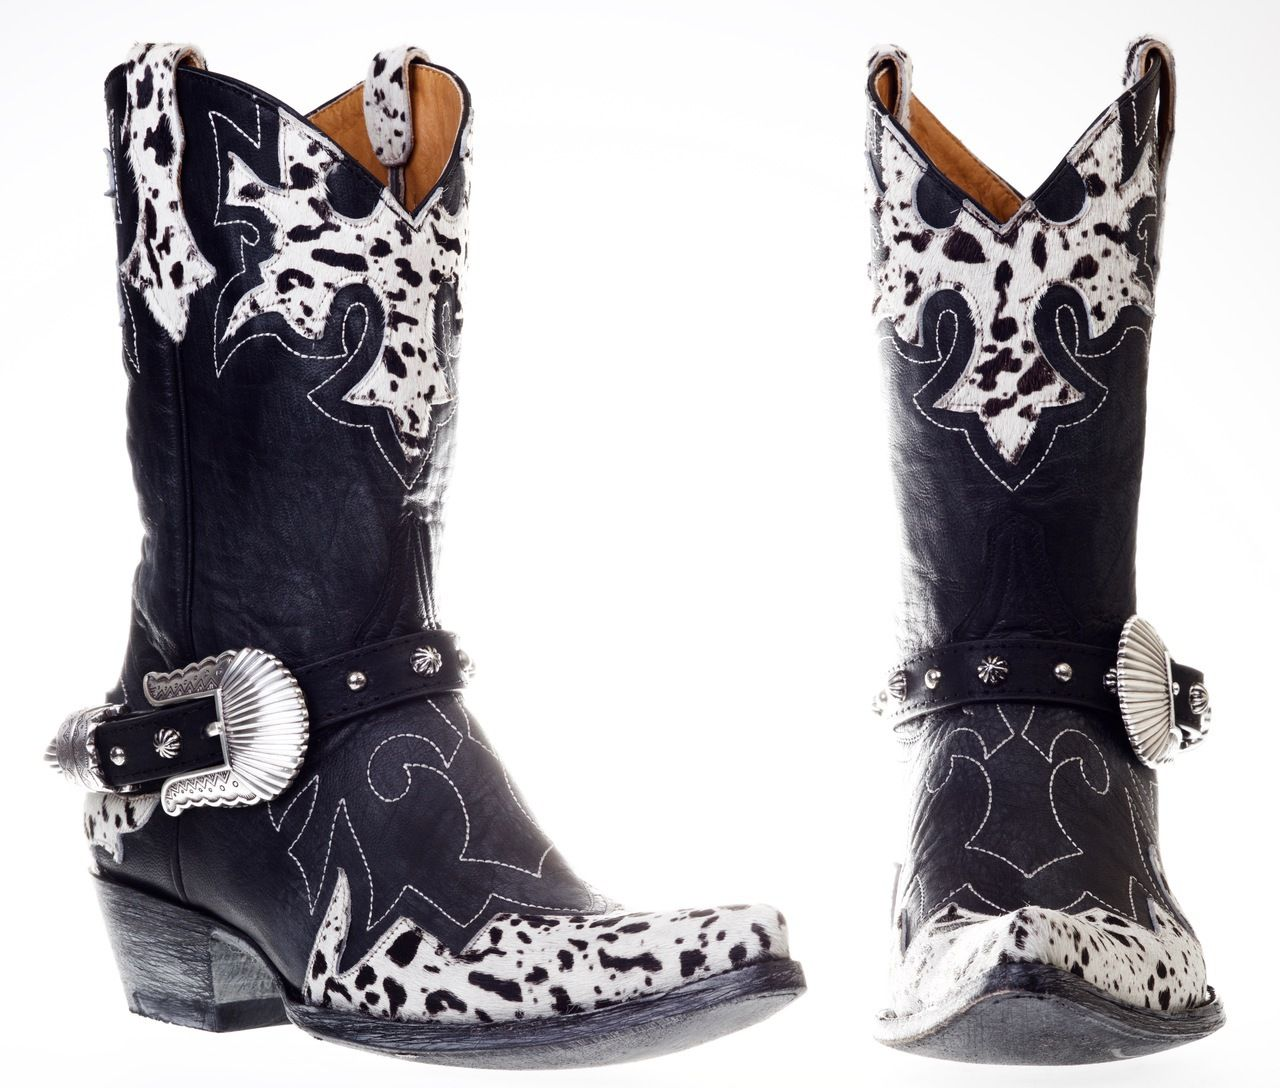 Black and White Hair On Cowboy Boots